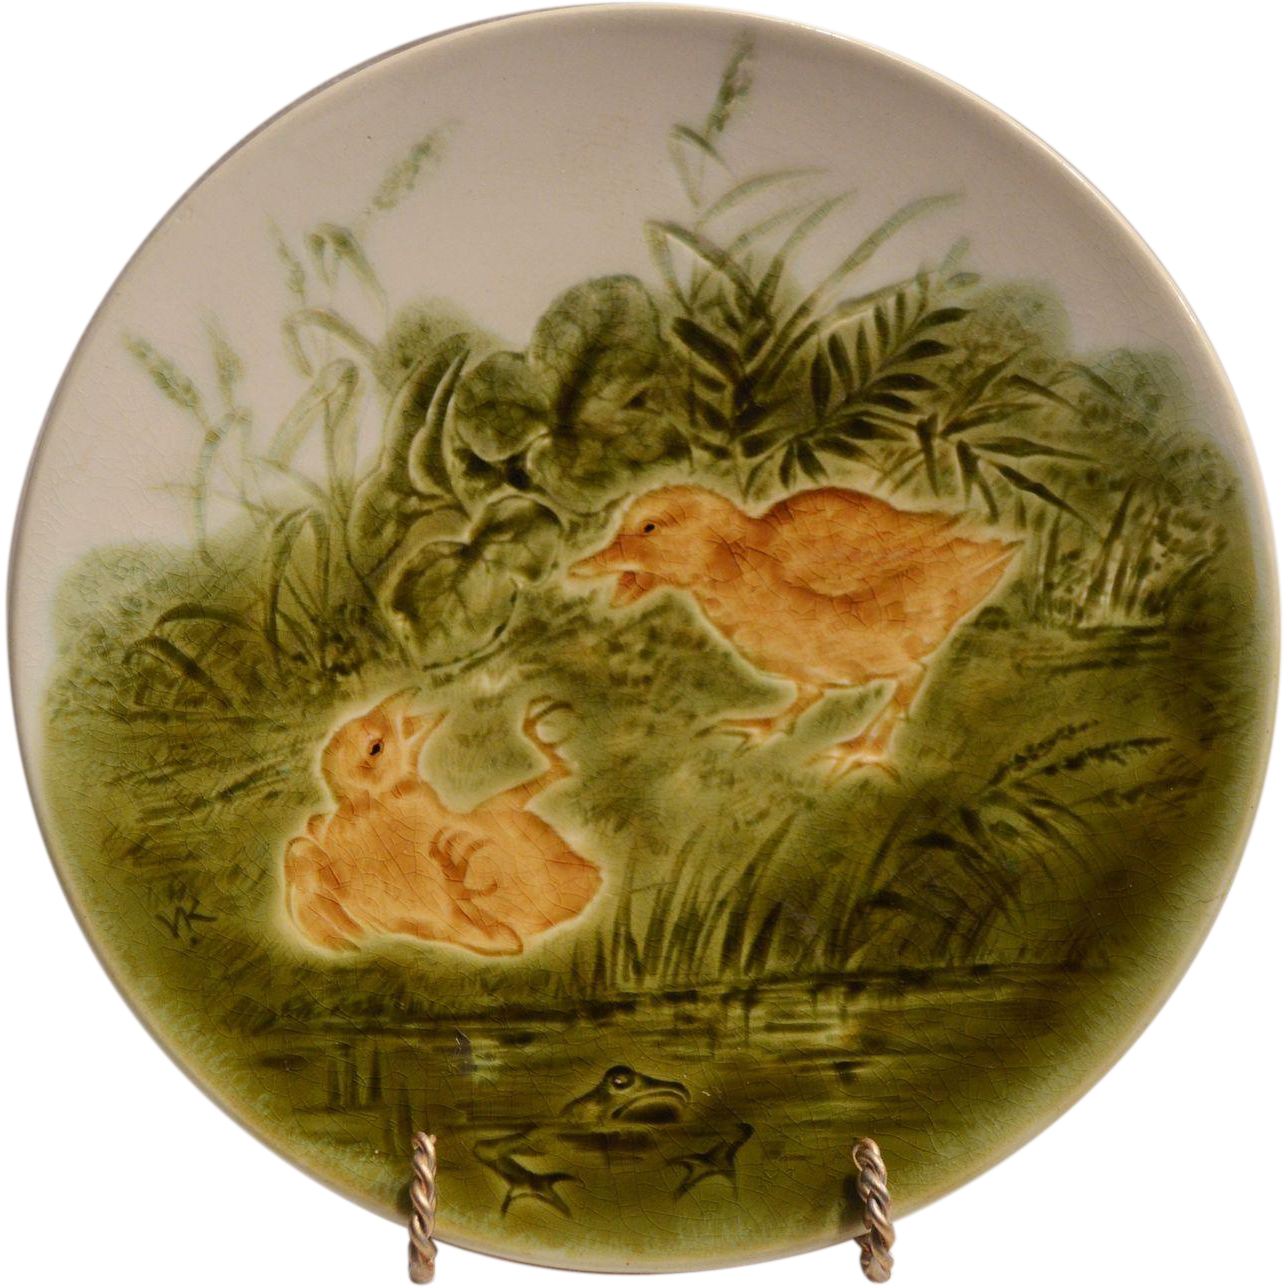 Adorable Spring Plate with Duckling, Chick and Frog ~ French Majolica / Faience ~ Sarreguemines France   1835-1900